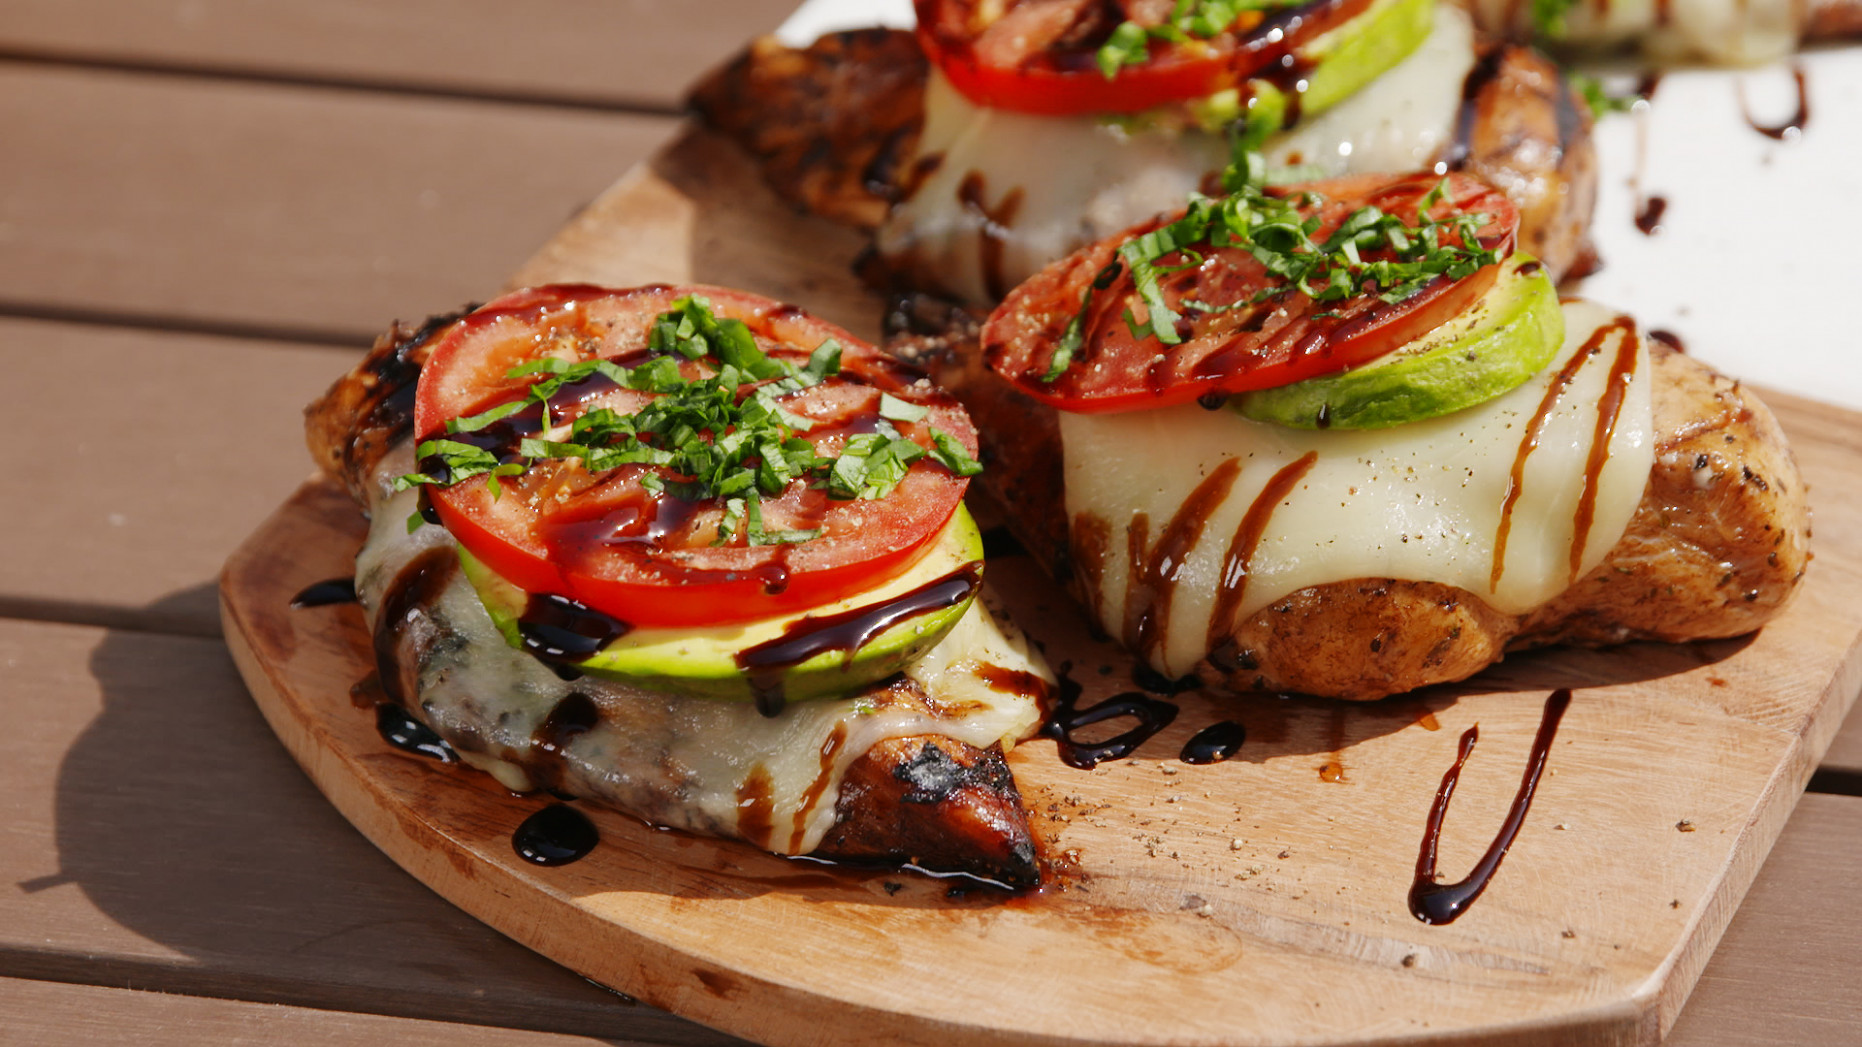 40+ Healthy Grilling Recipes - Healthy BBQ Ideas for the ..